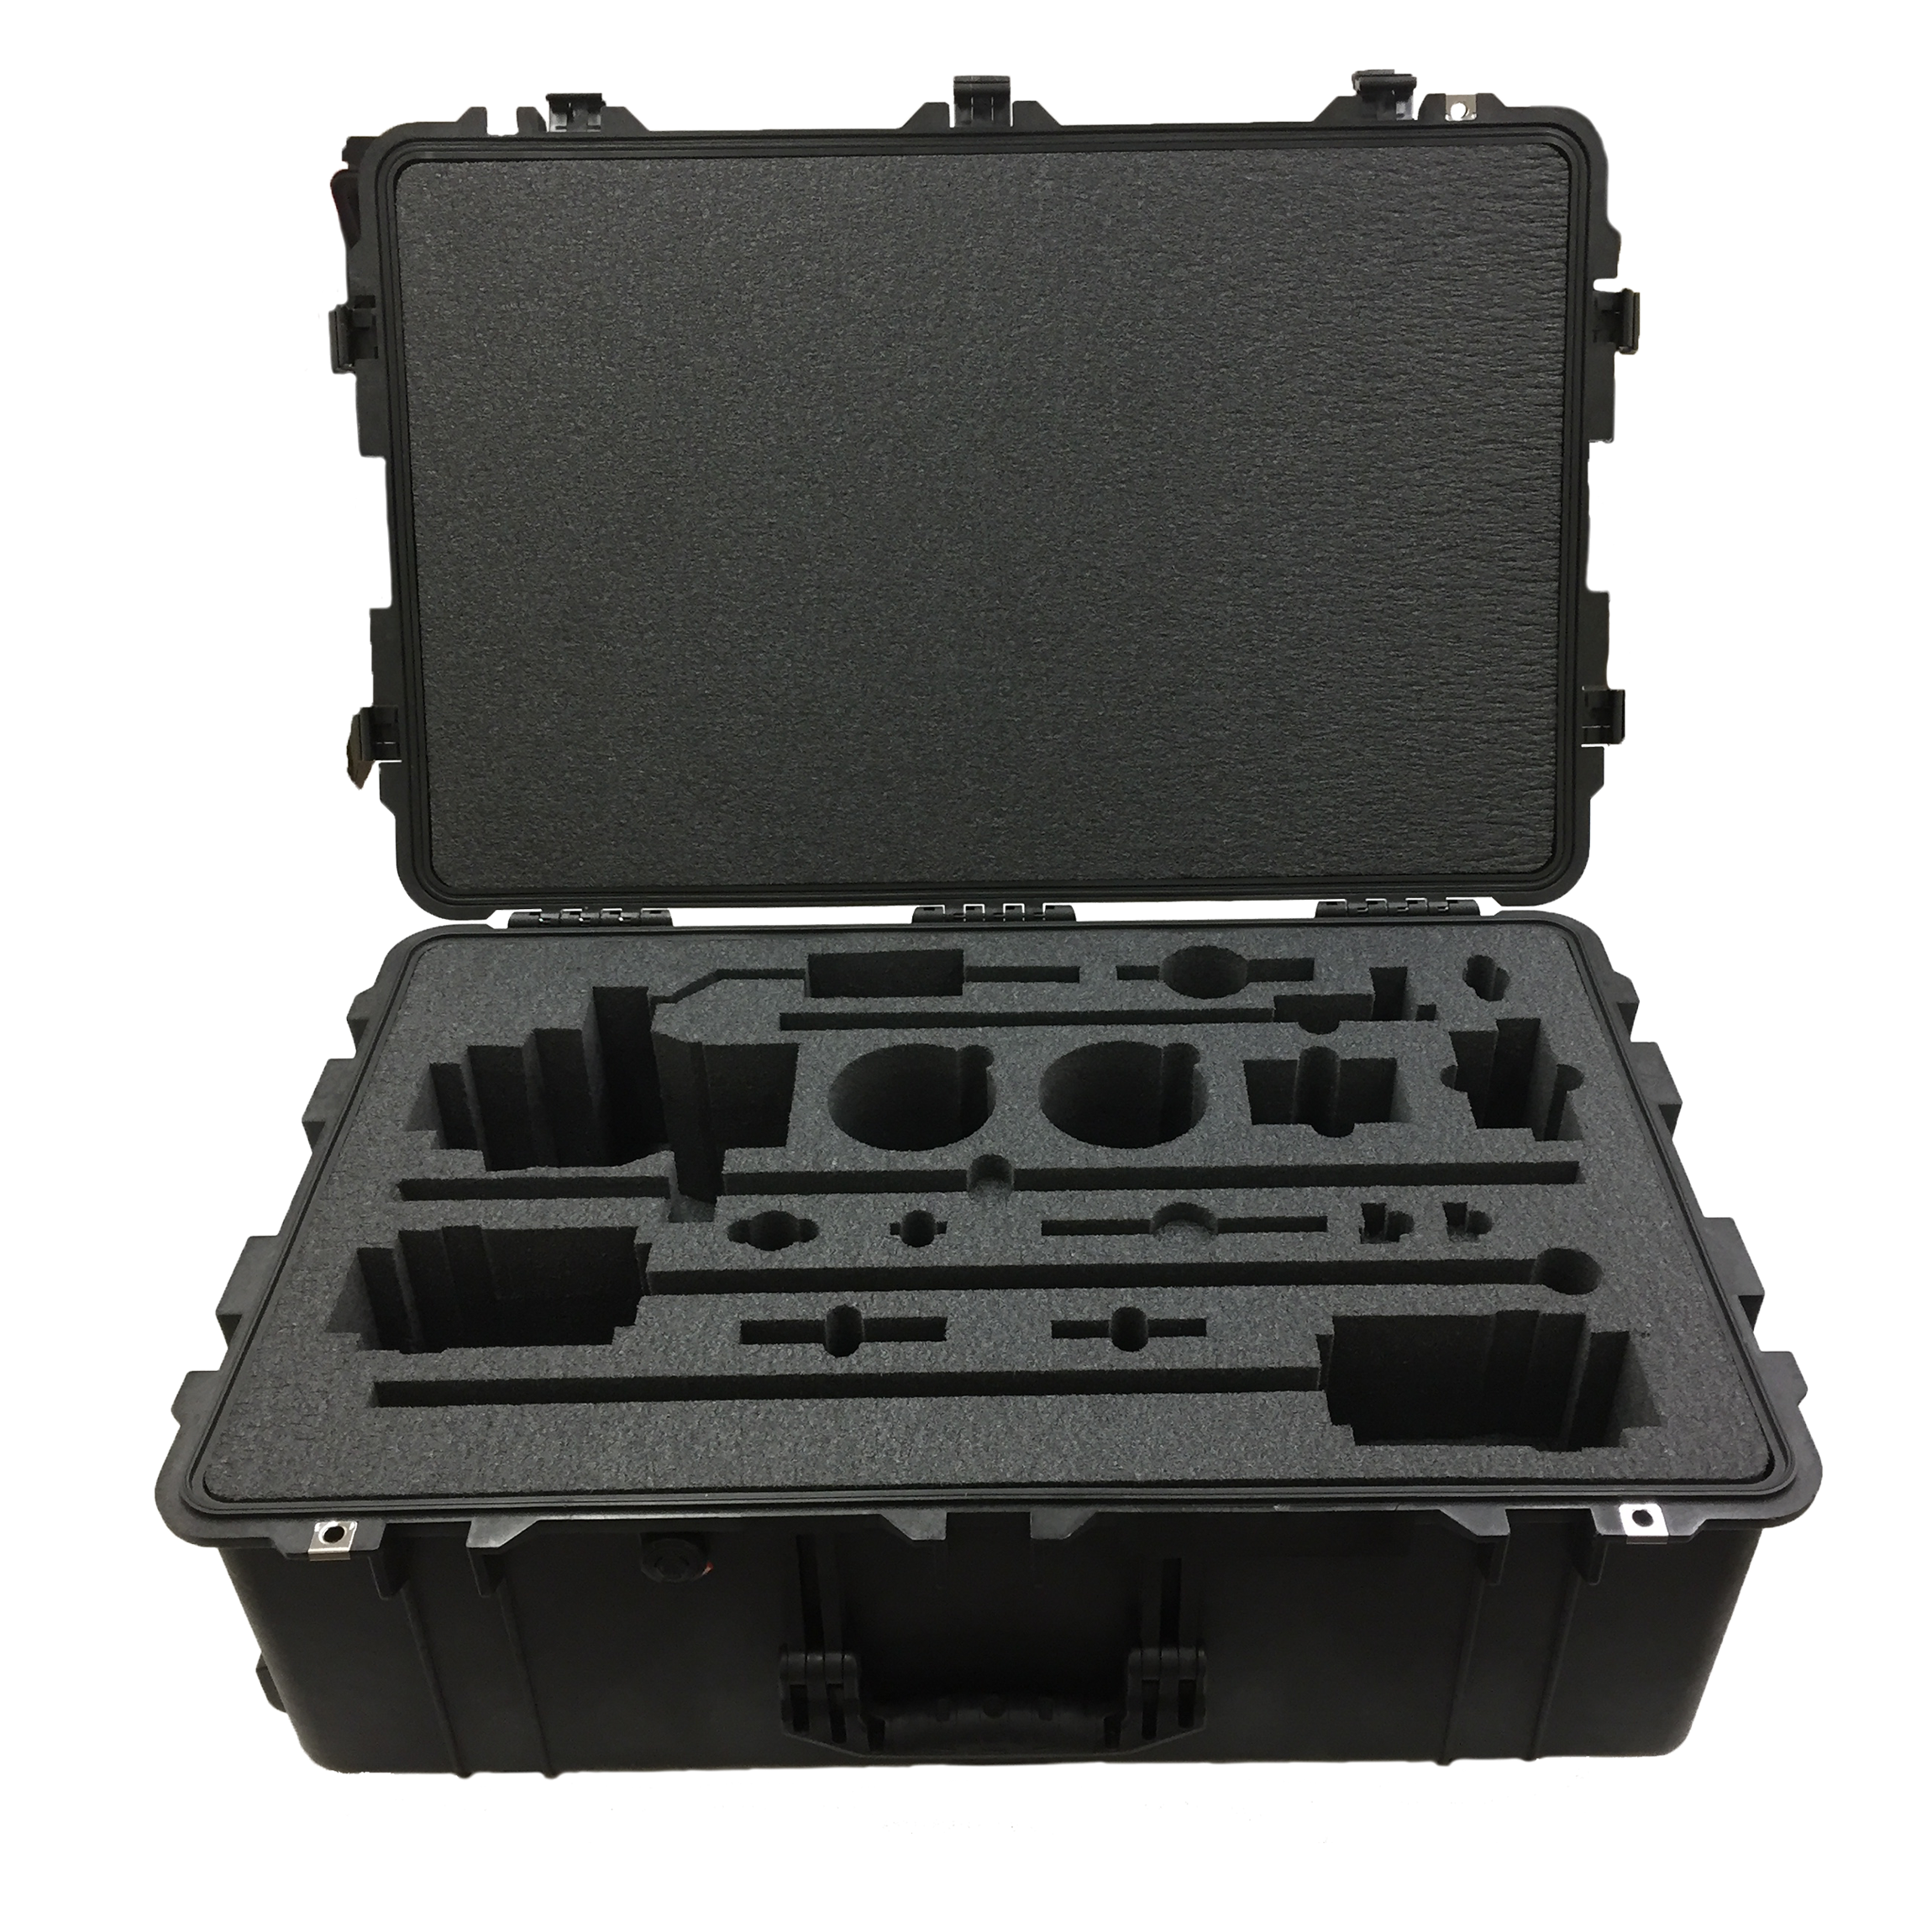 Custom Cut Foam Insert for Field Kit 1 Case Components